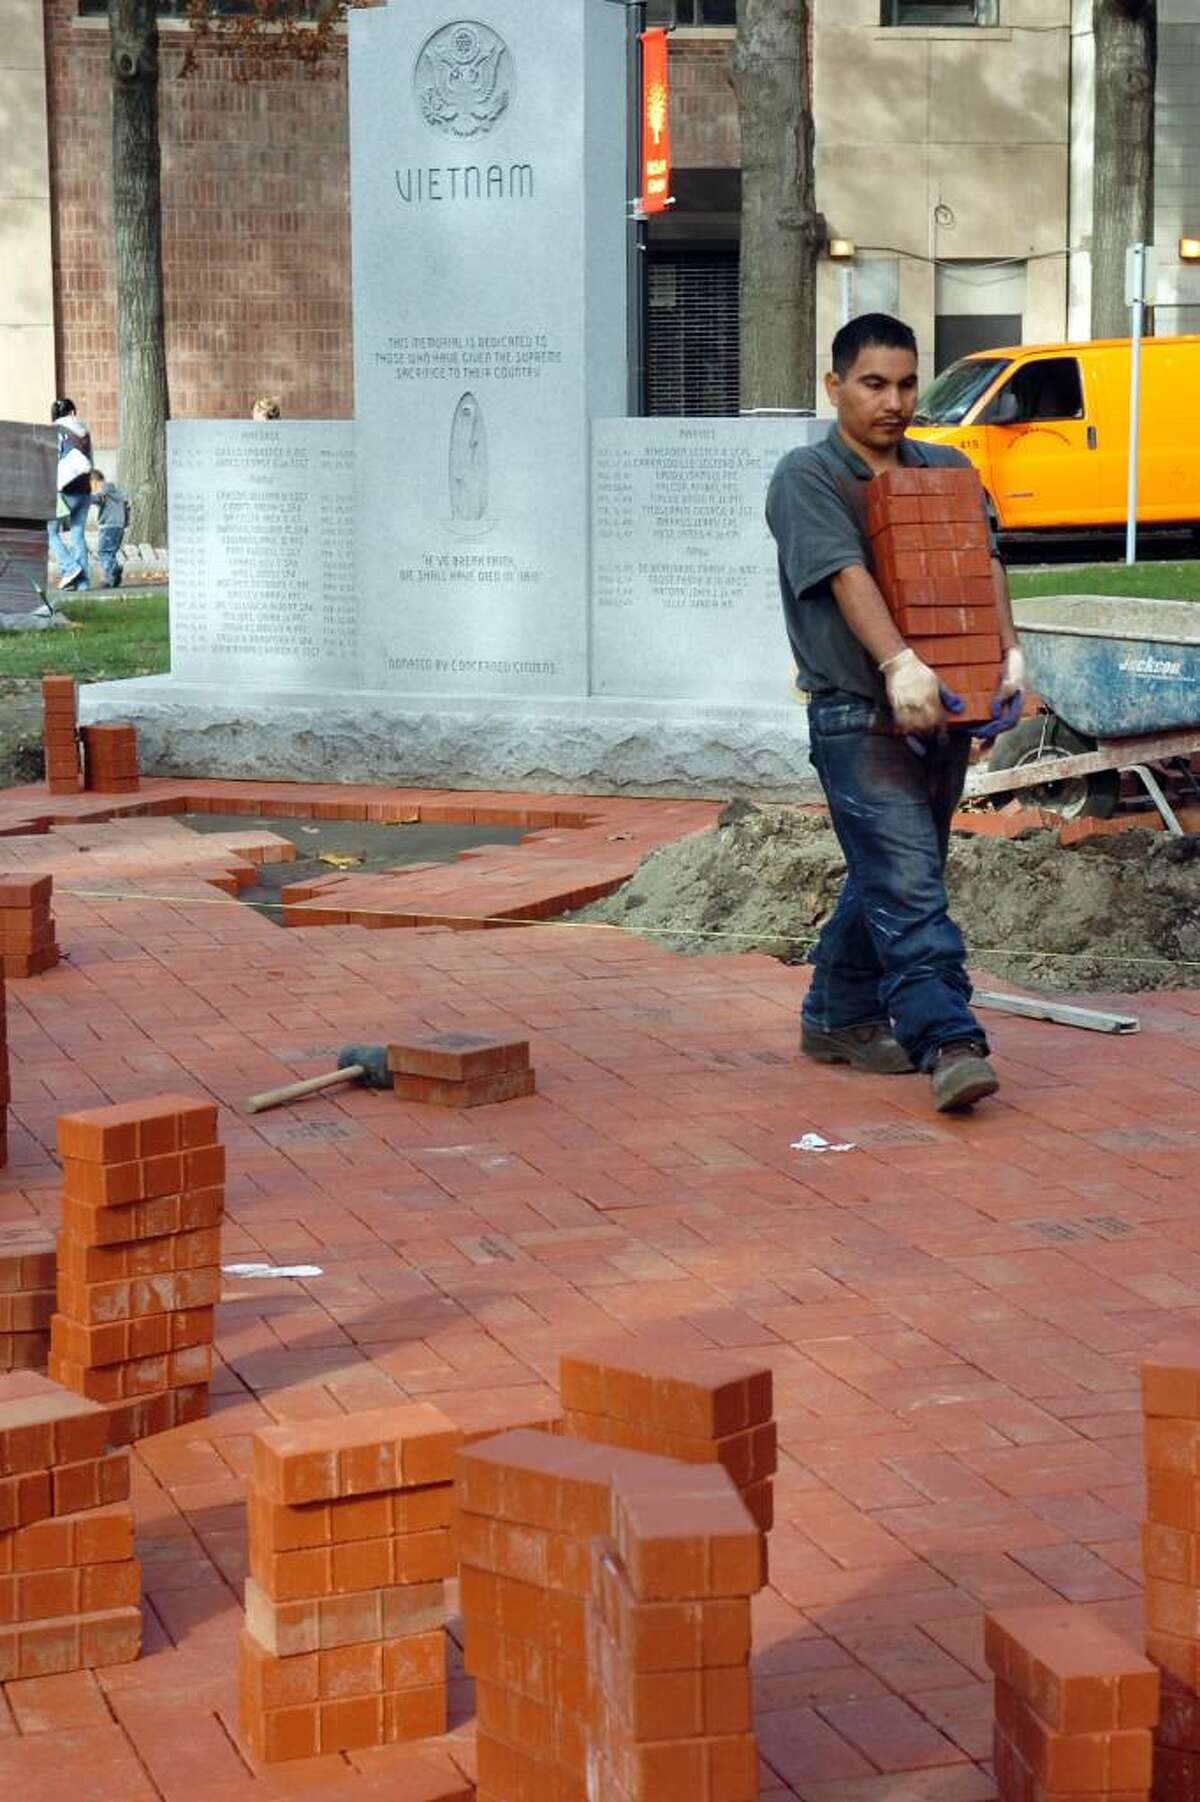 Drian (cq) Cjona carries a pile of bricks near the Vietnam Memorial, next to McLevy Hall, in downtown Bridgeport on Nov. 2nd, 2009. The Vietnam Memorial, which has stood for years, has been moved to a new location next to the recently dedicated World War II memorial.